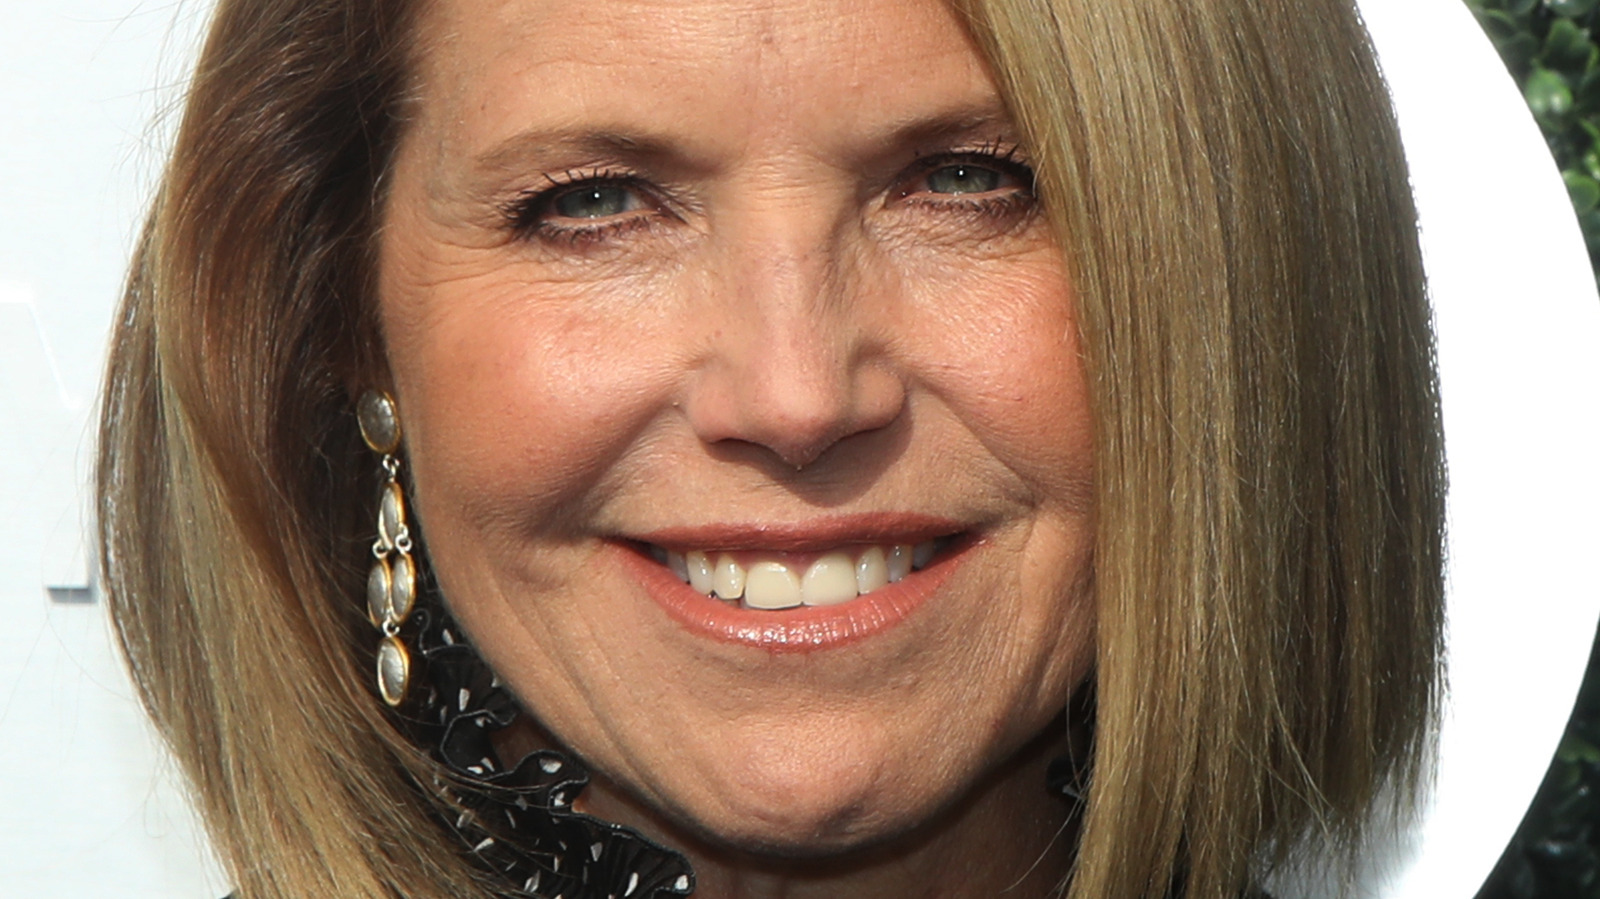 People Open Up About Katie Couric's Cruelty In Her New Book